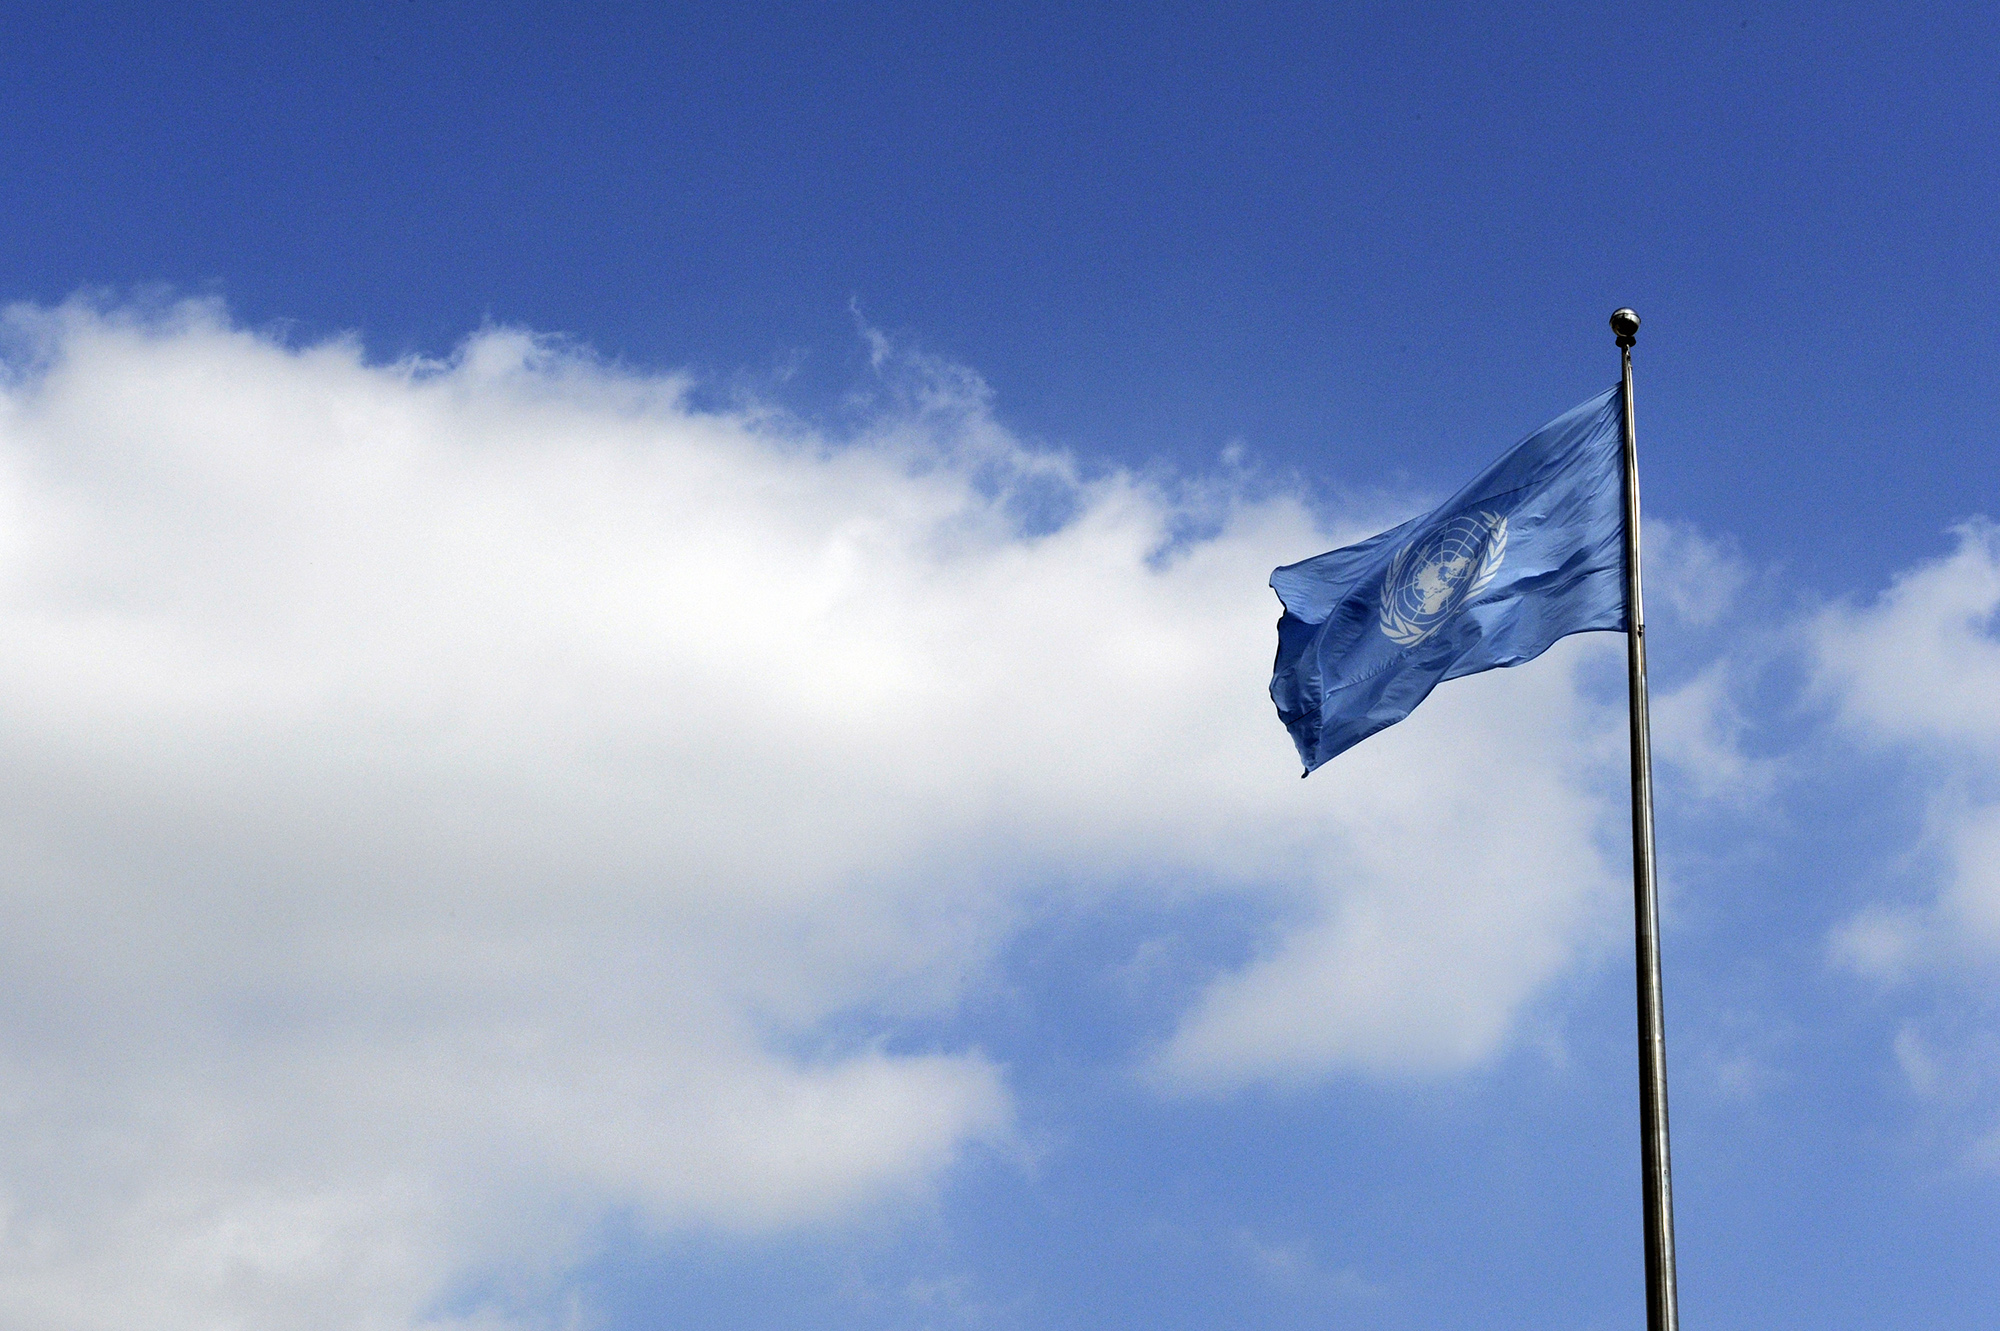 United Nations waving flag